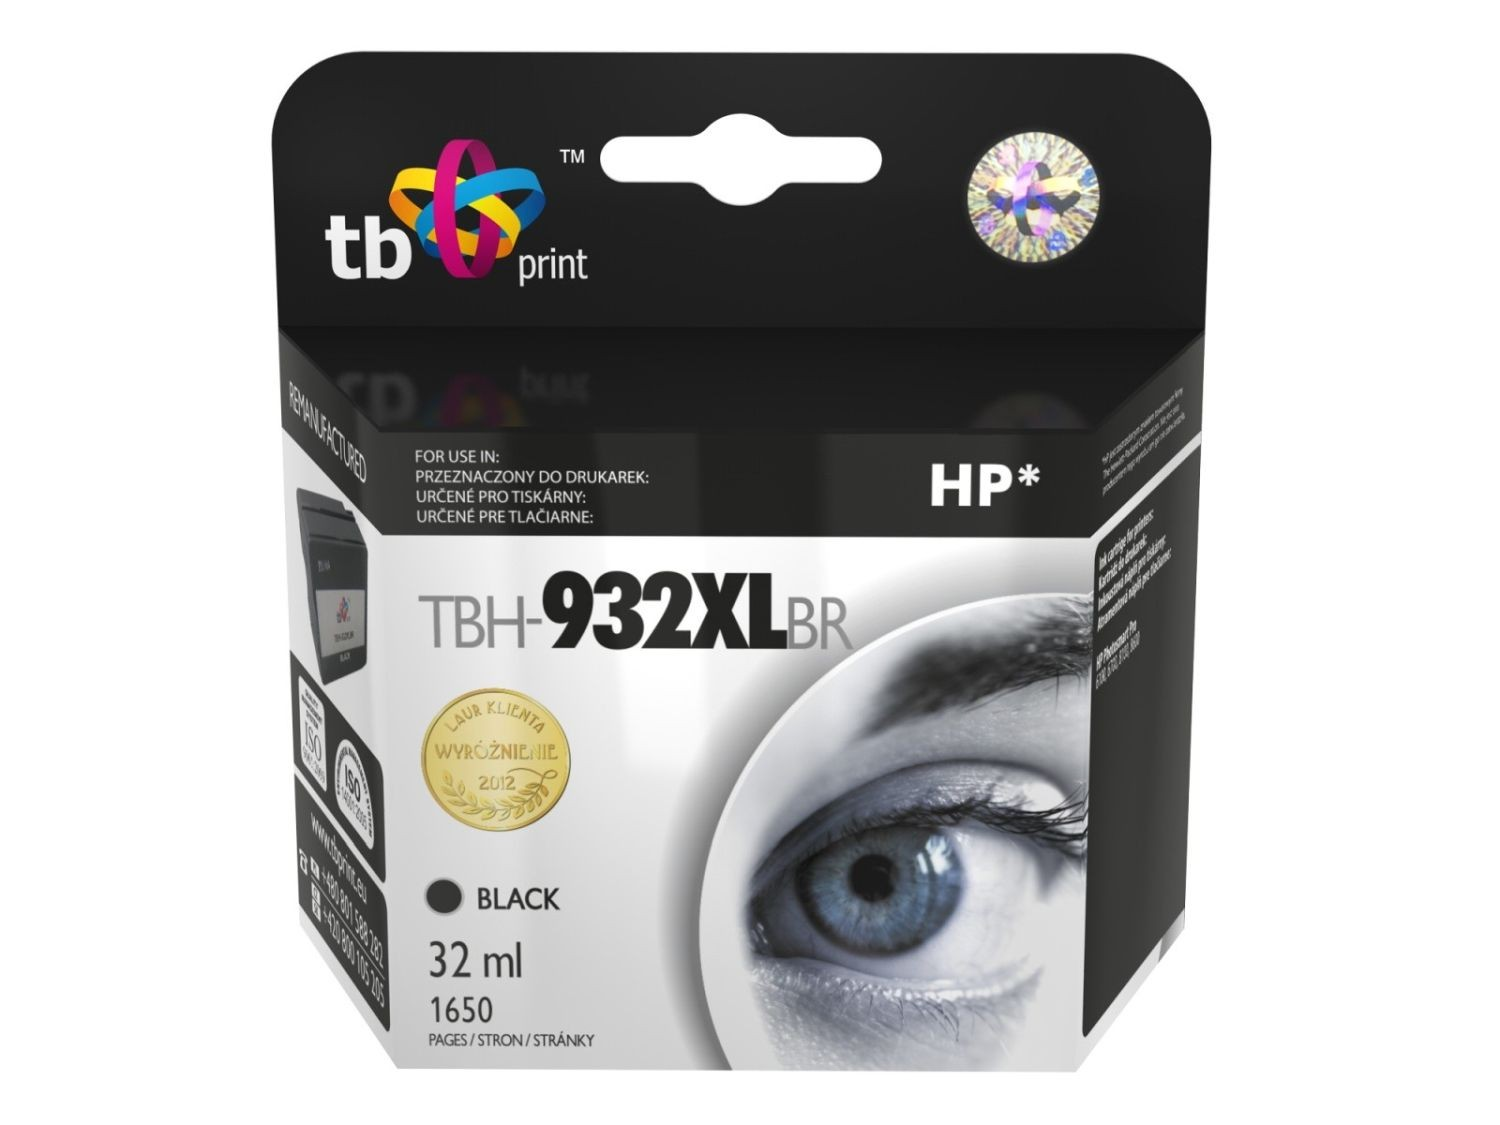 TB Print Tusz do HP PS Pro 8100 TBH-932XLBR BK ref.